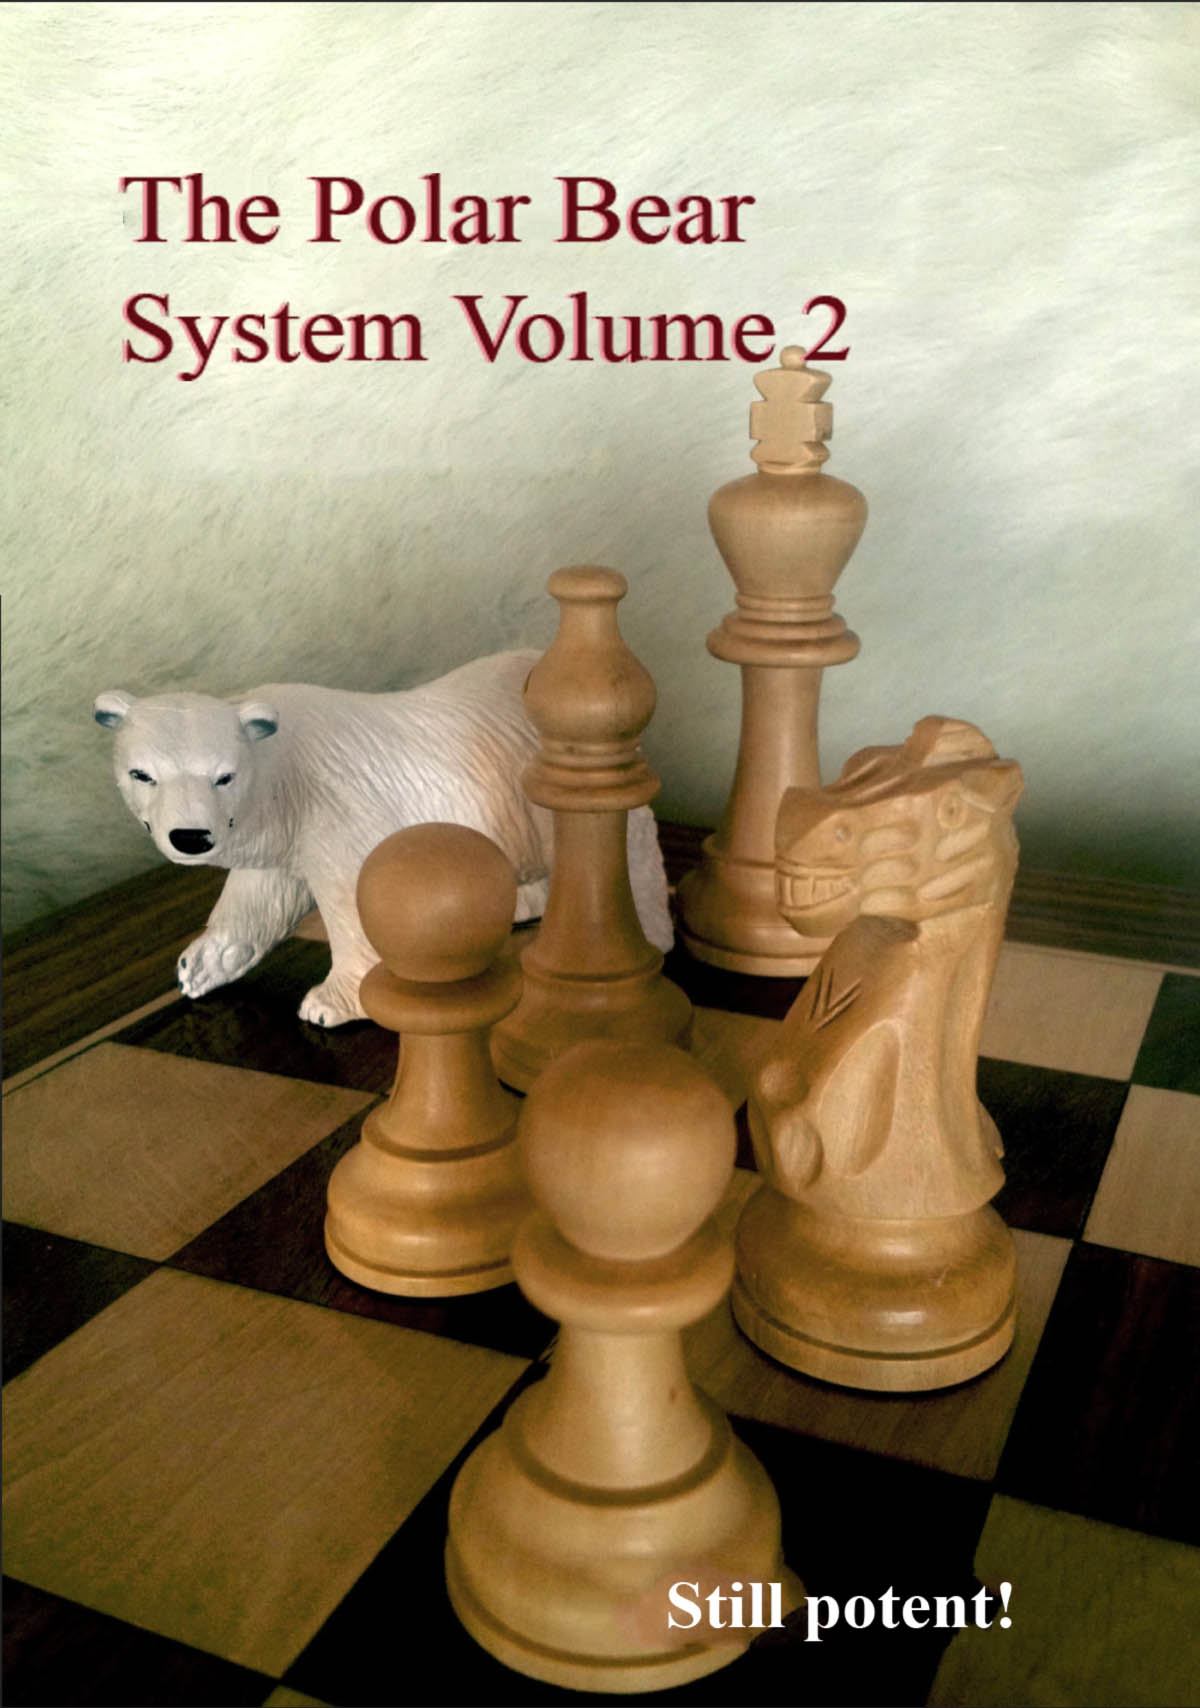 The Polar Bear System: Volume 2